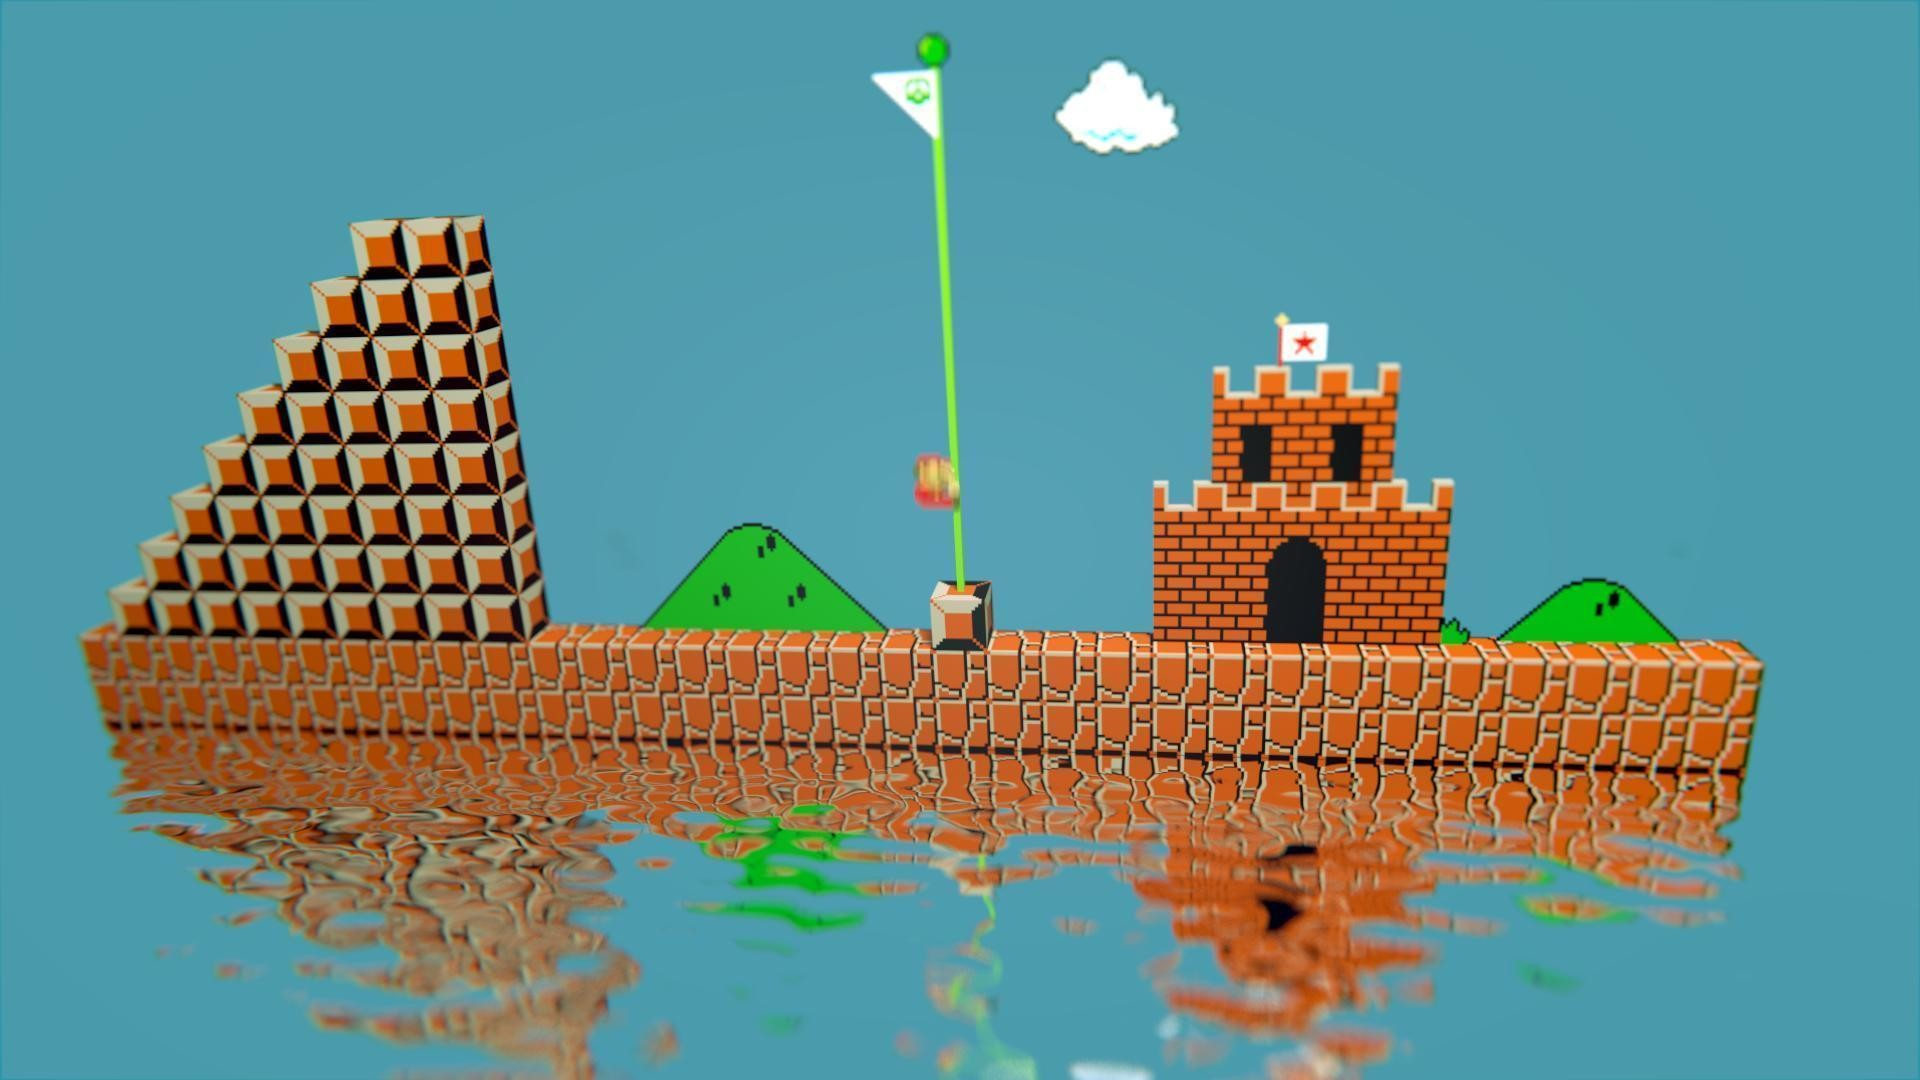 How To Get Old Iphone Wallpapers Back 8 Bit Mario Wallpaper 70 Images